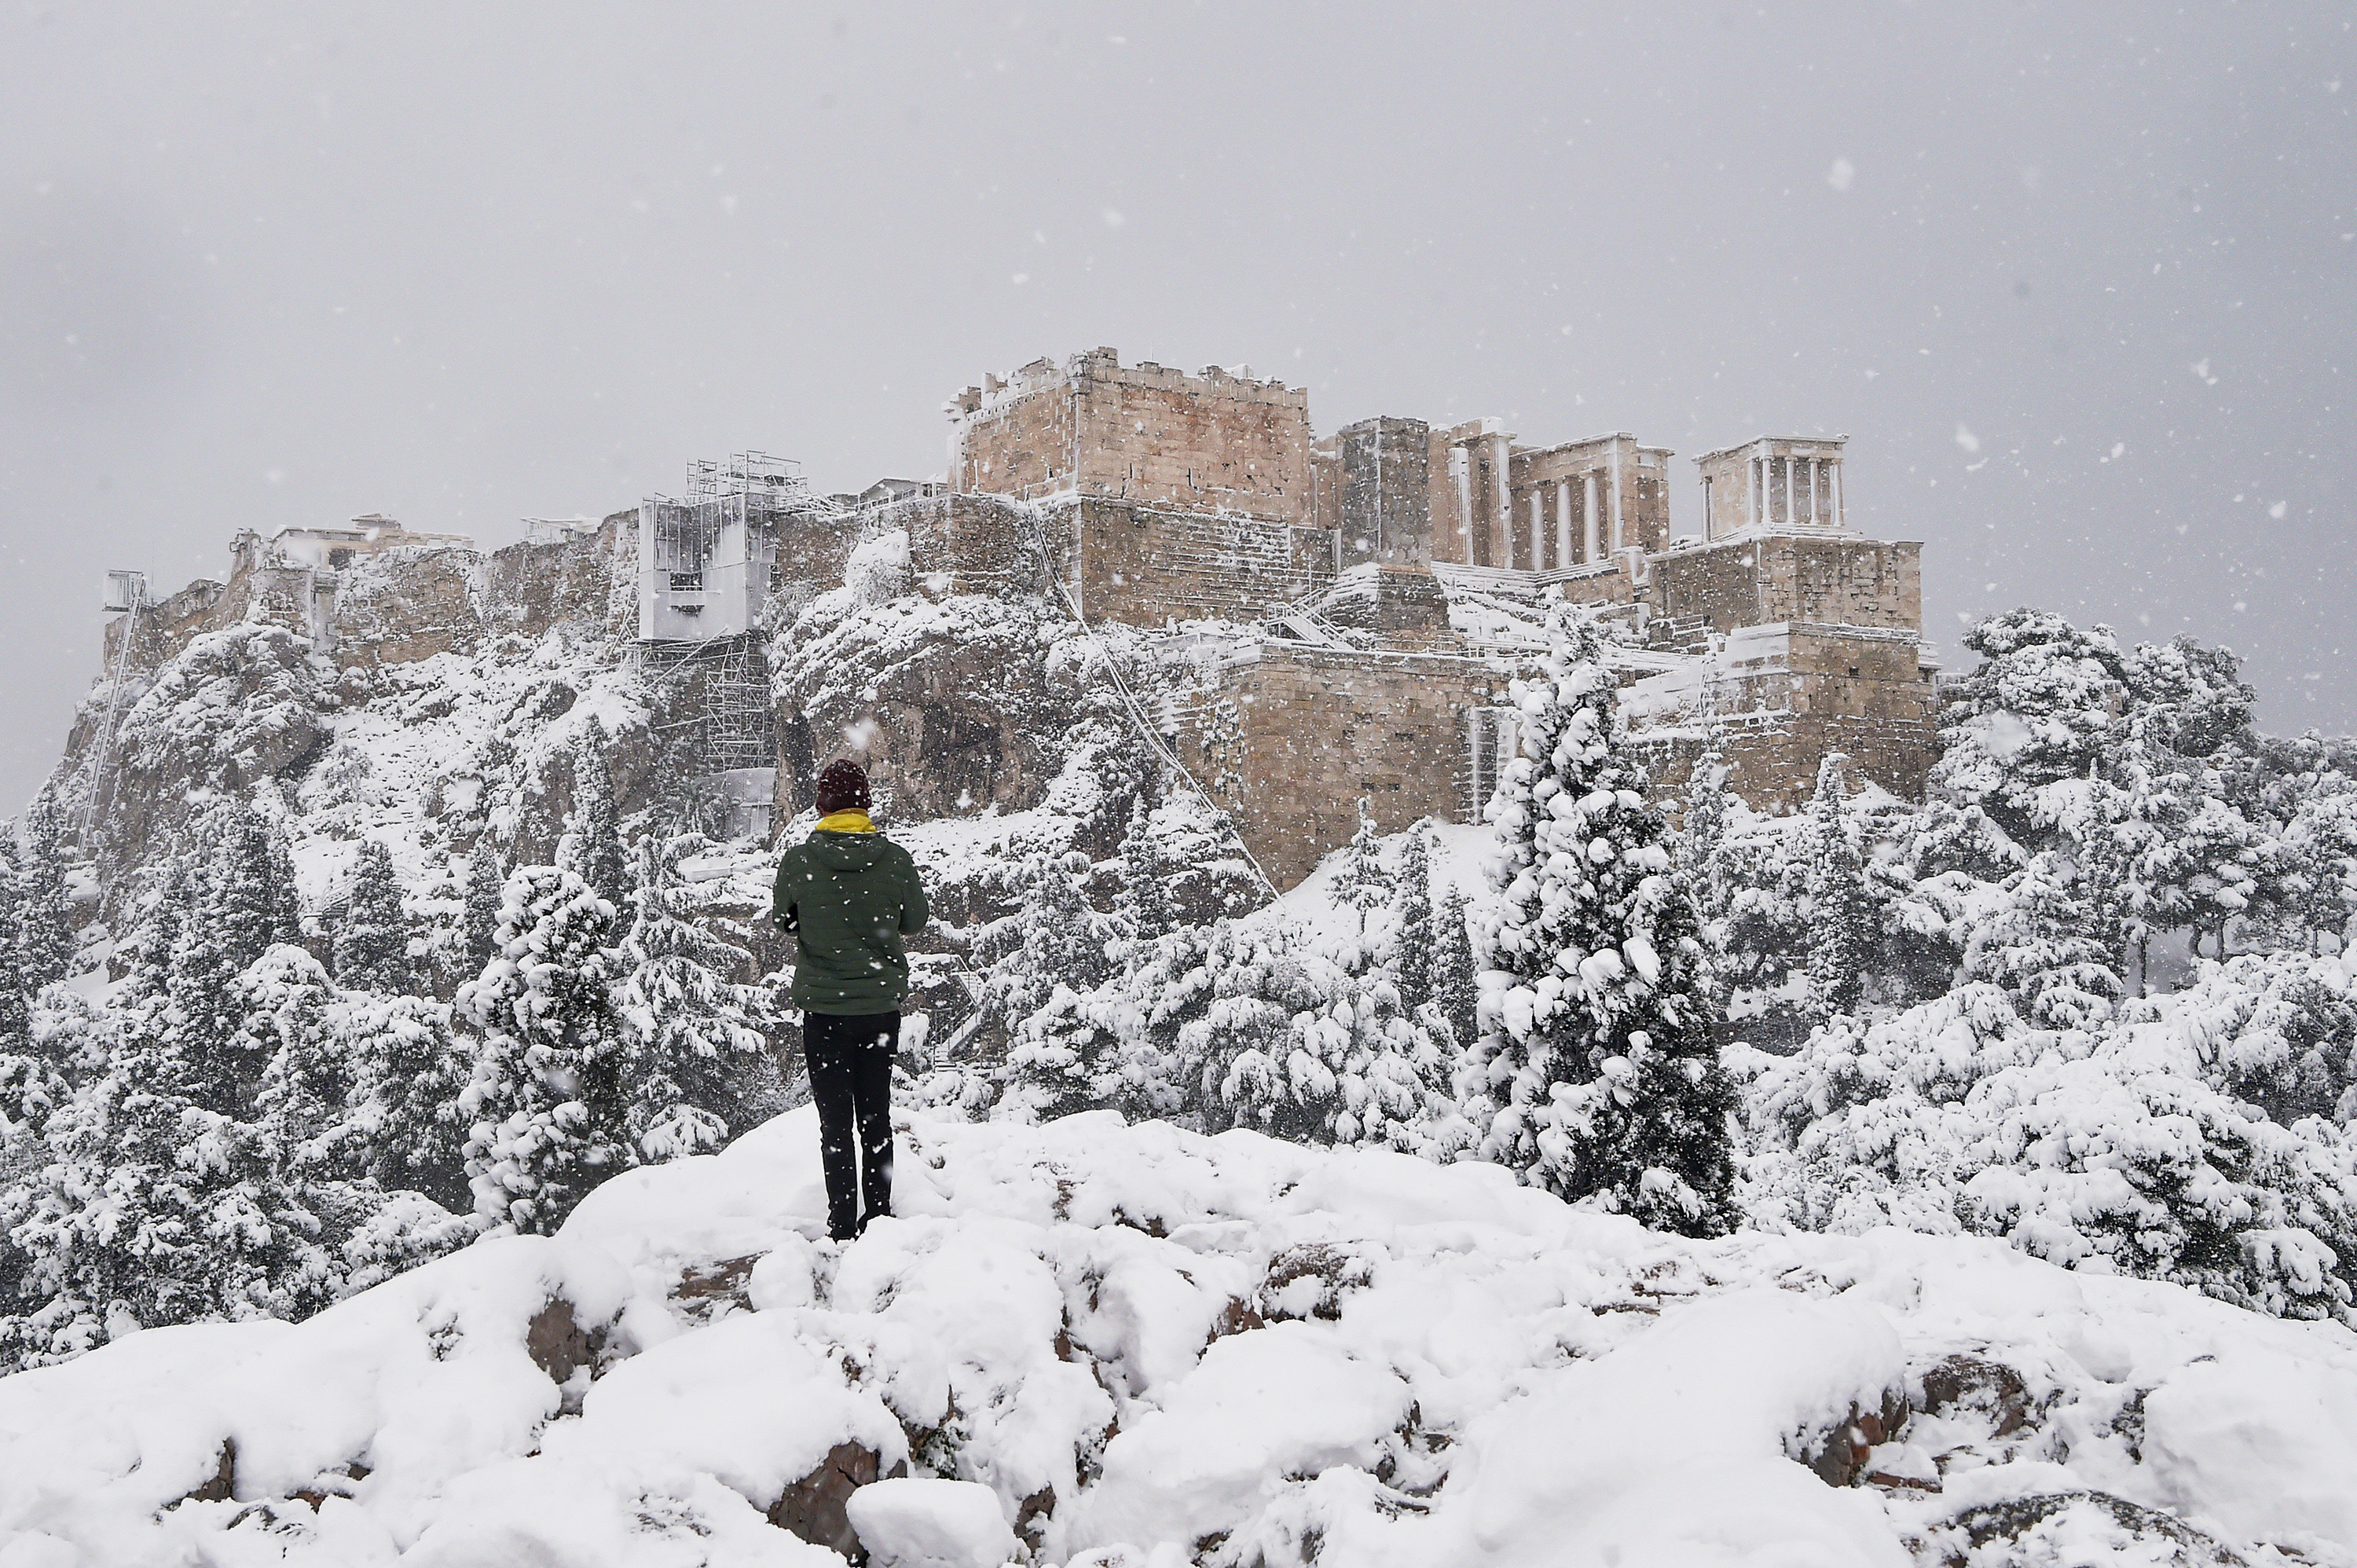 A man staring at a snowy Greek ruin